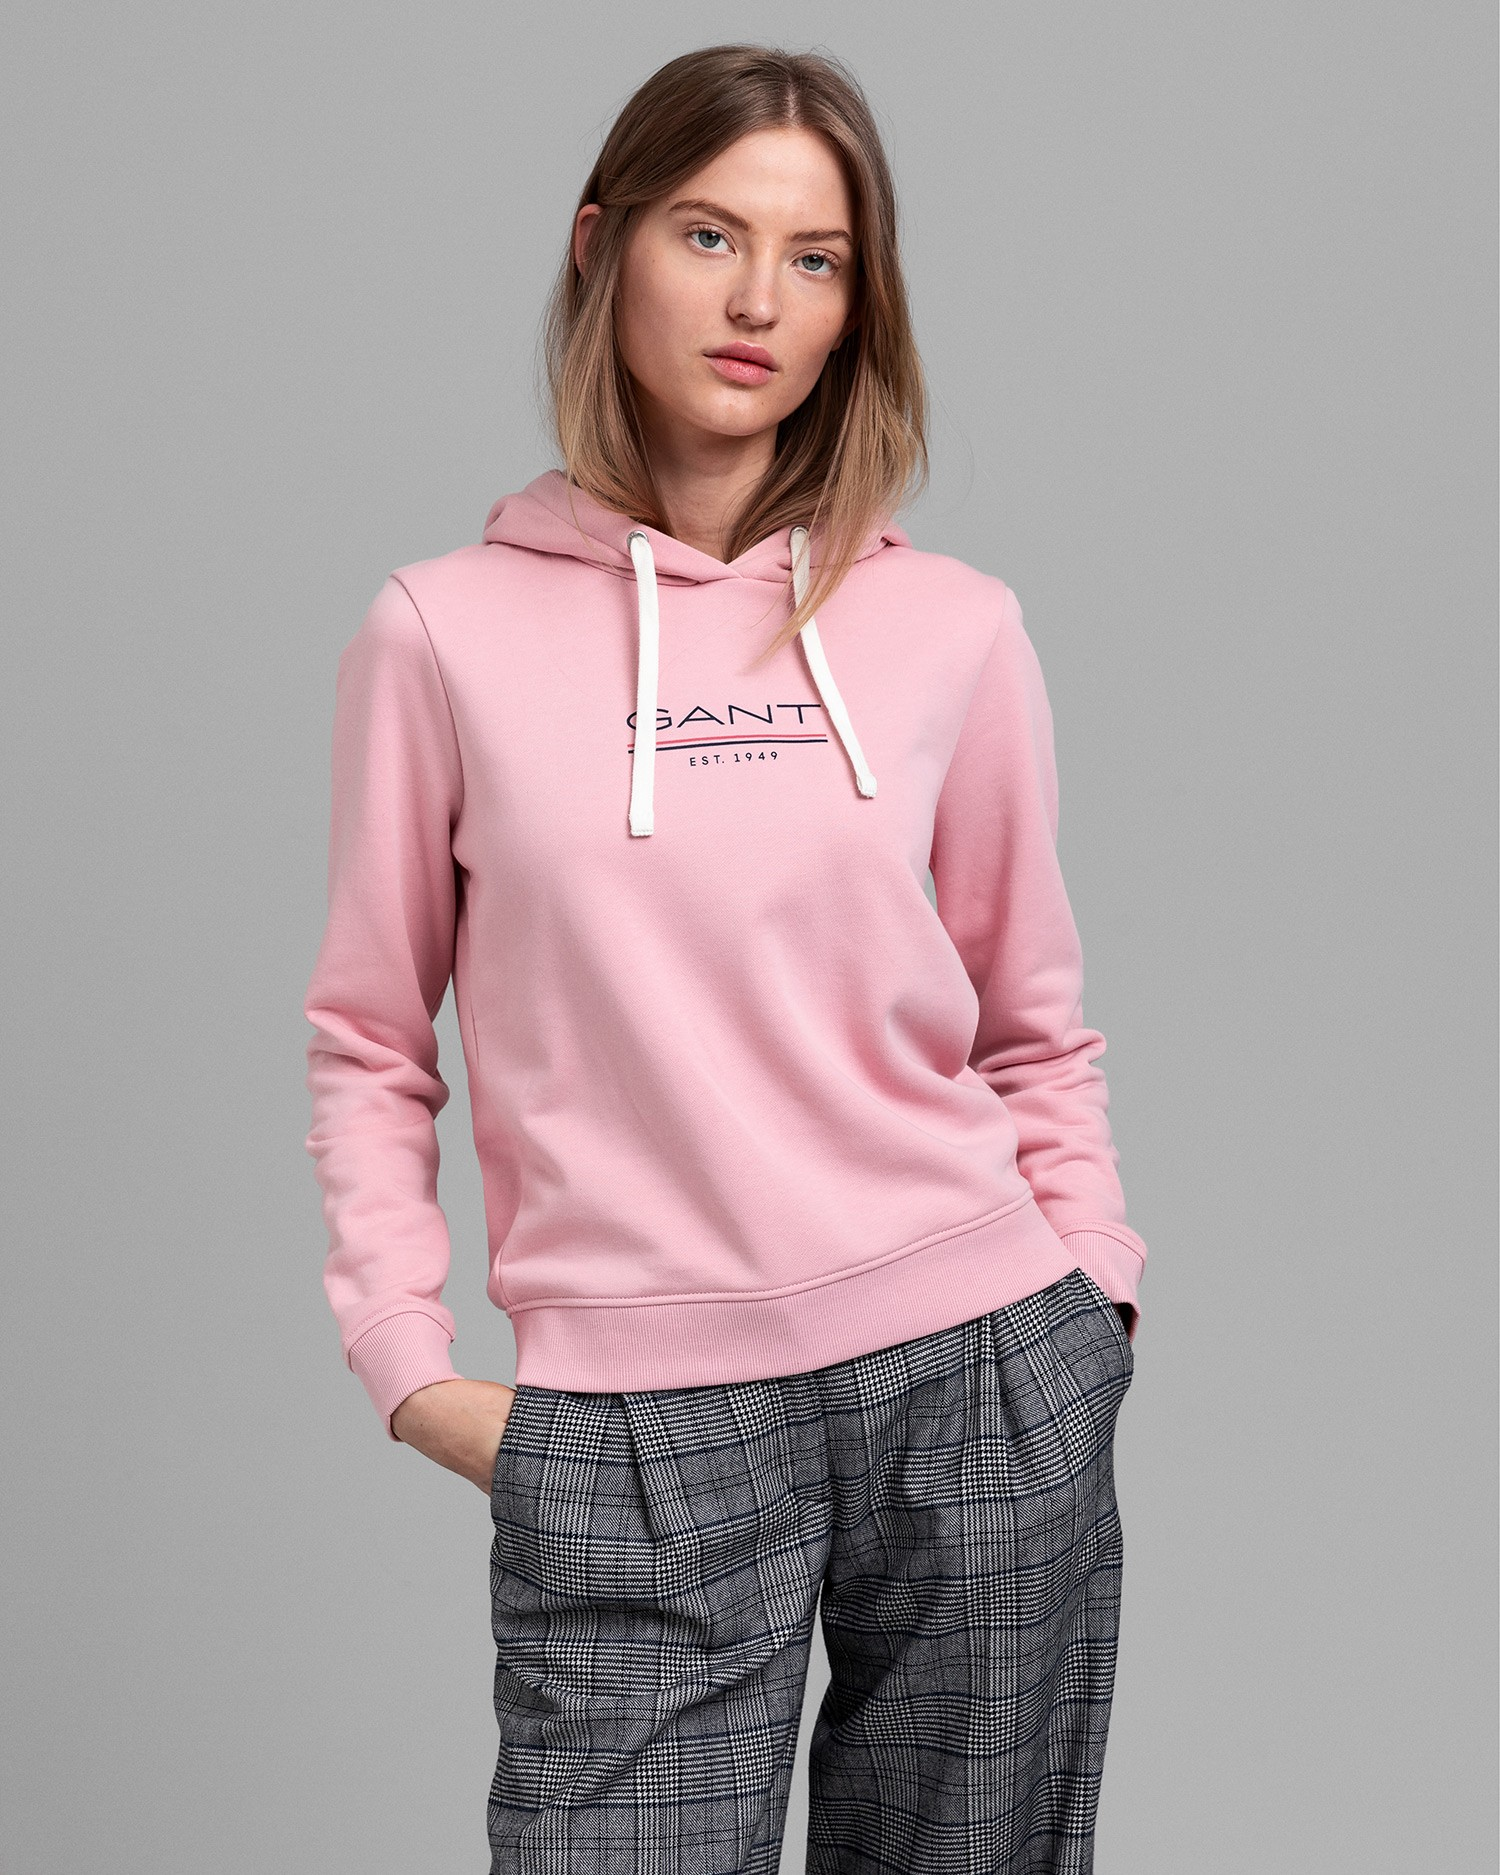 GANT Women's Md. The Fall Logo Hood Sweatshirt - 4200620